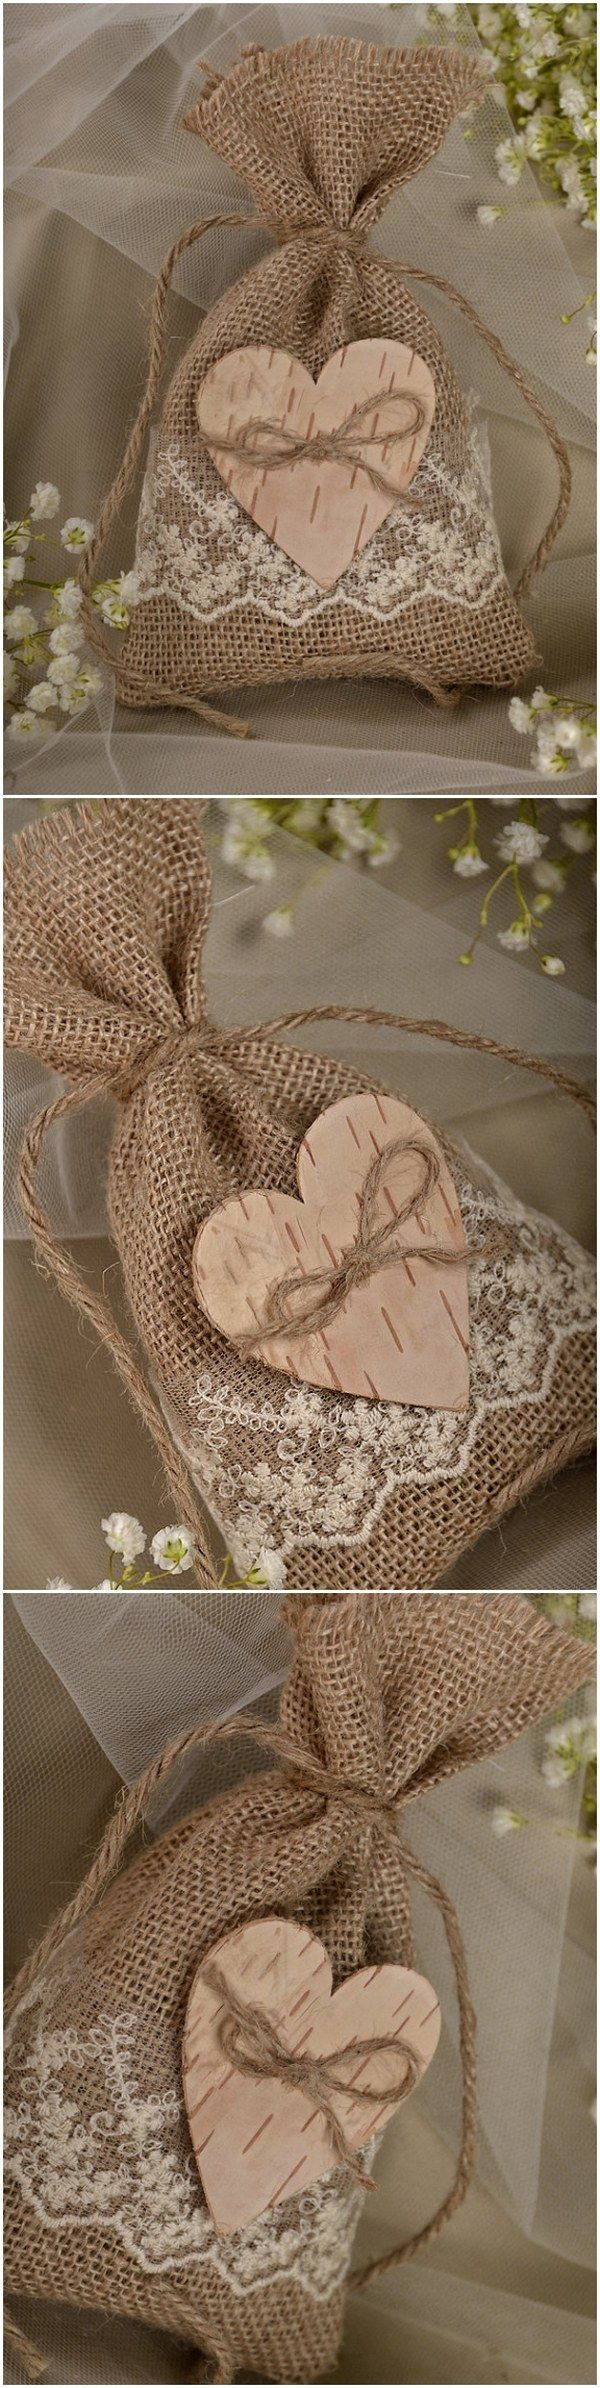 Rustic country burlap and lace wedding favor bags #weddingideas #rusticwedding #countrywedding #weddingfavors @4LOVEPolkaDots